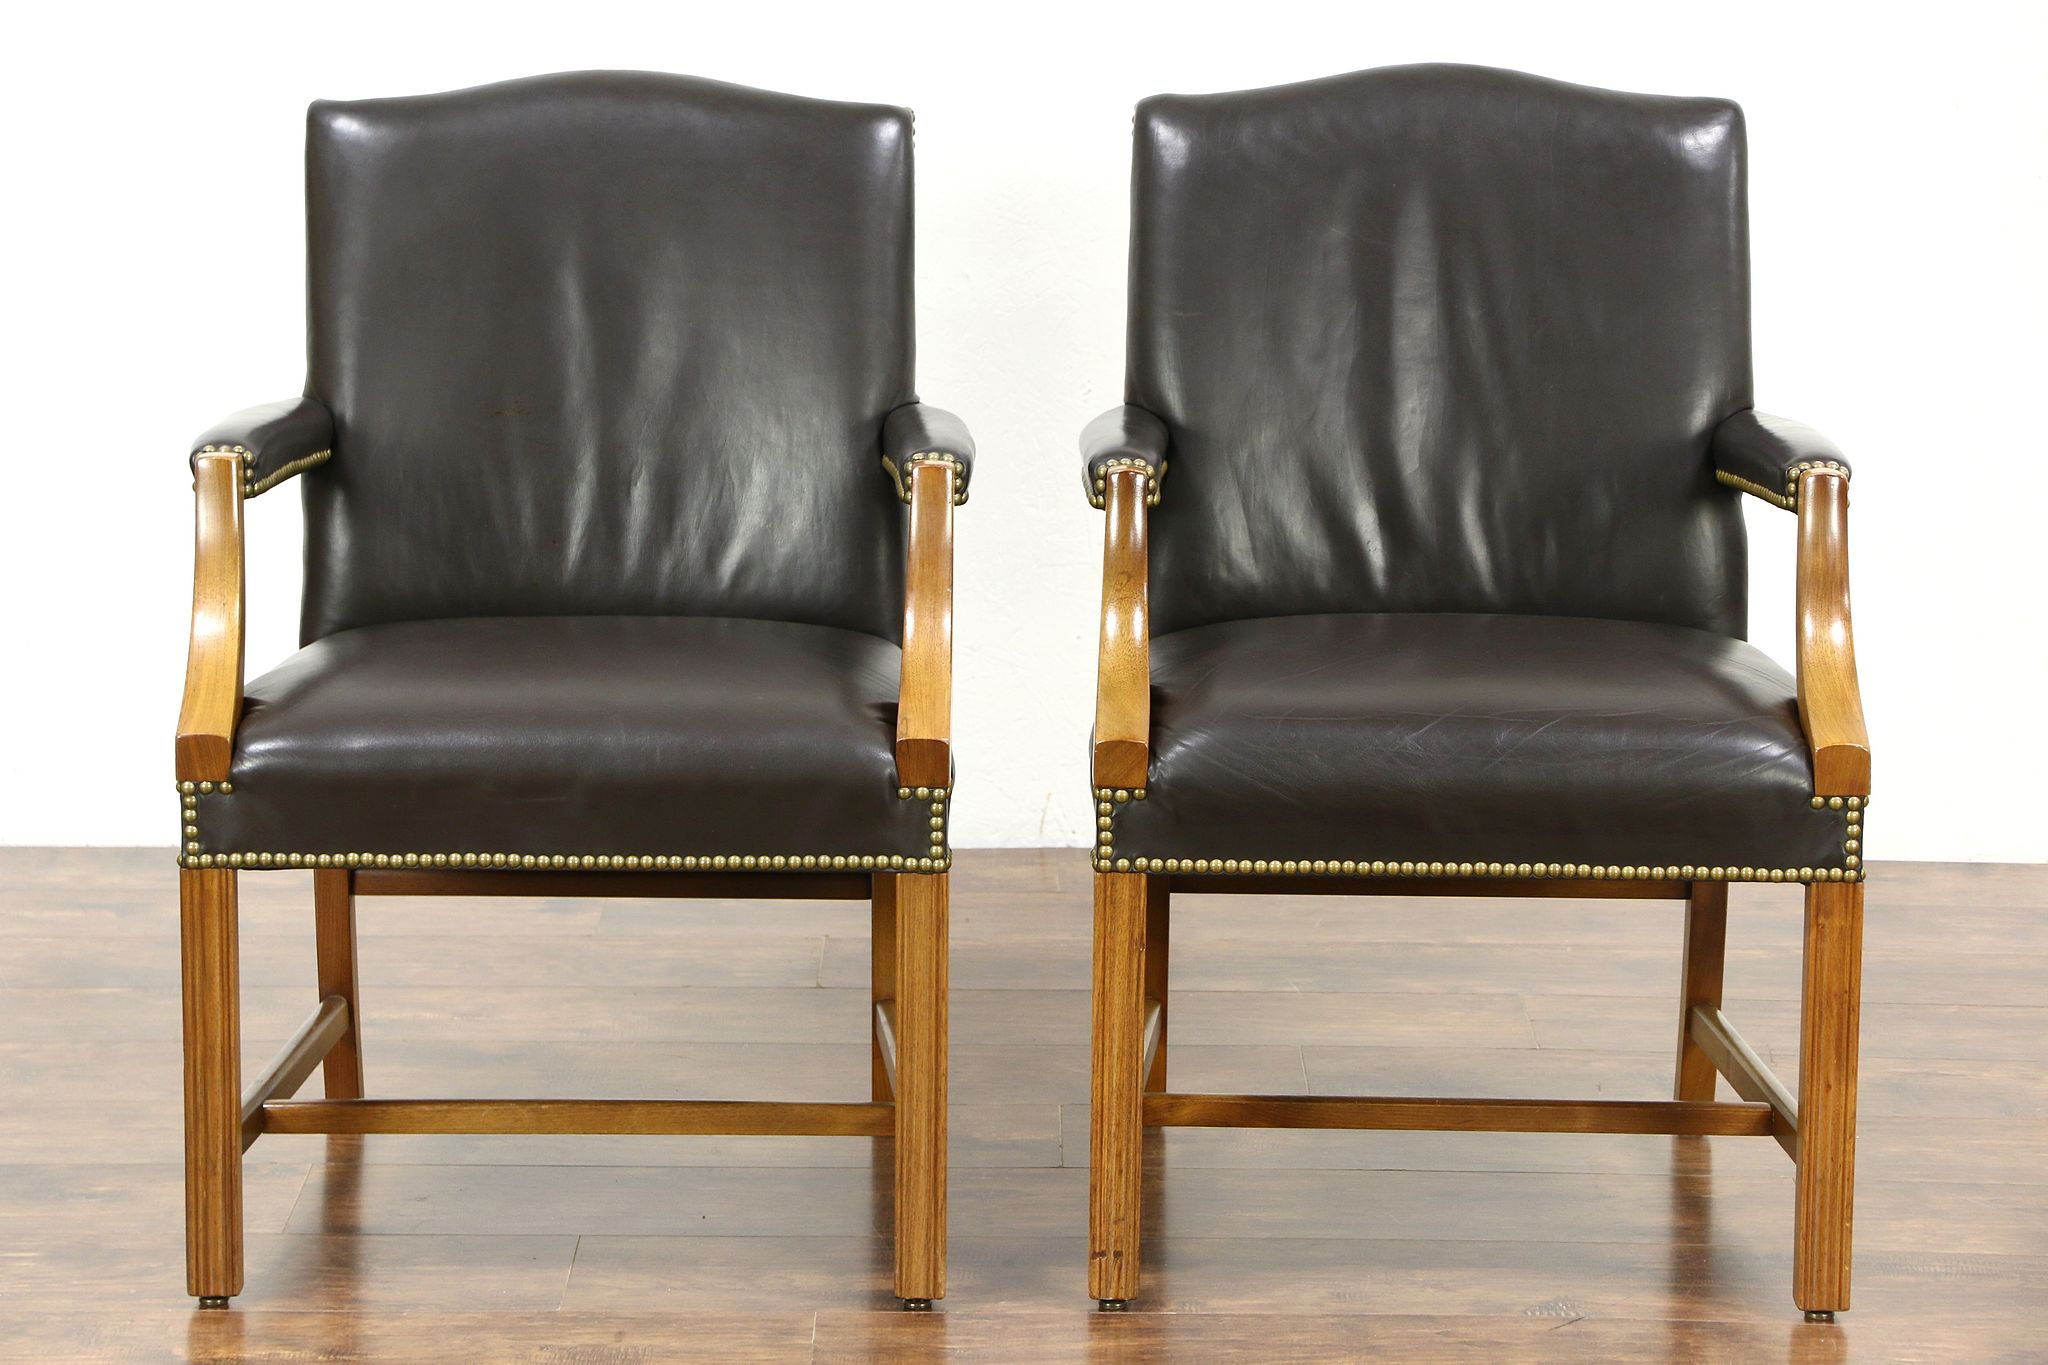 Pair Of Vintage Leather Library Or Office Chairs With Arms Signed Taylor